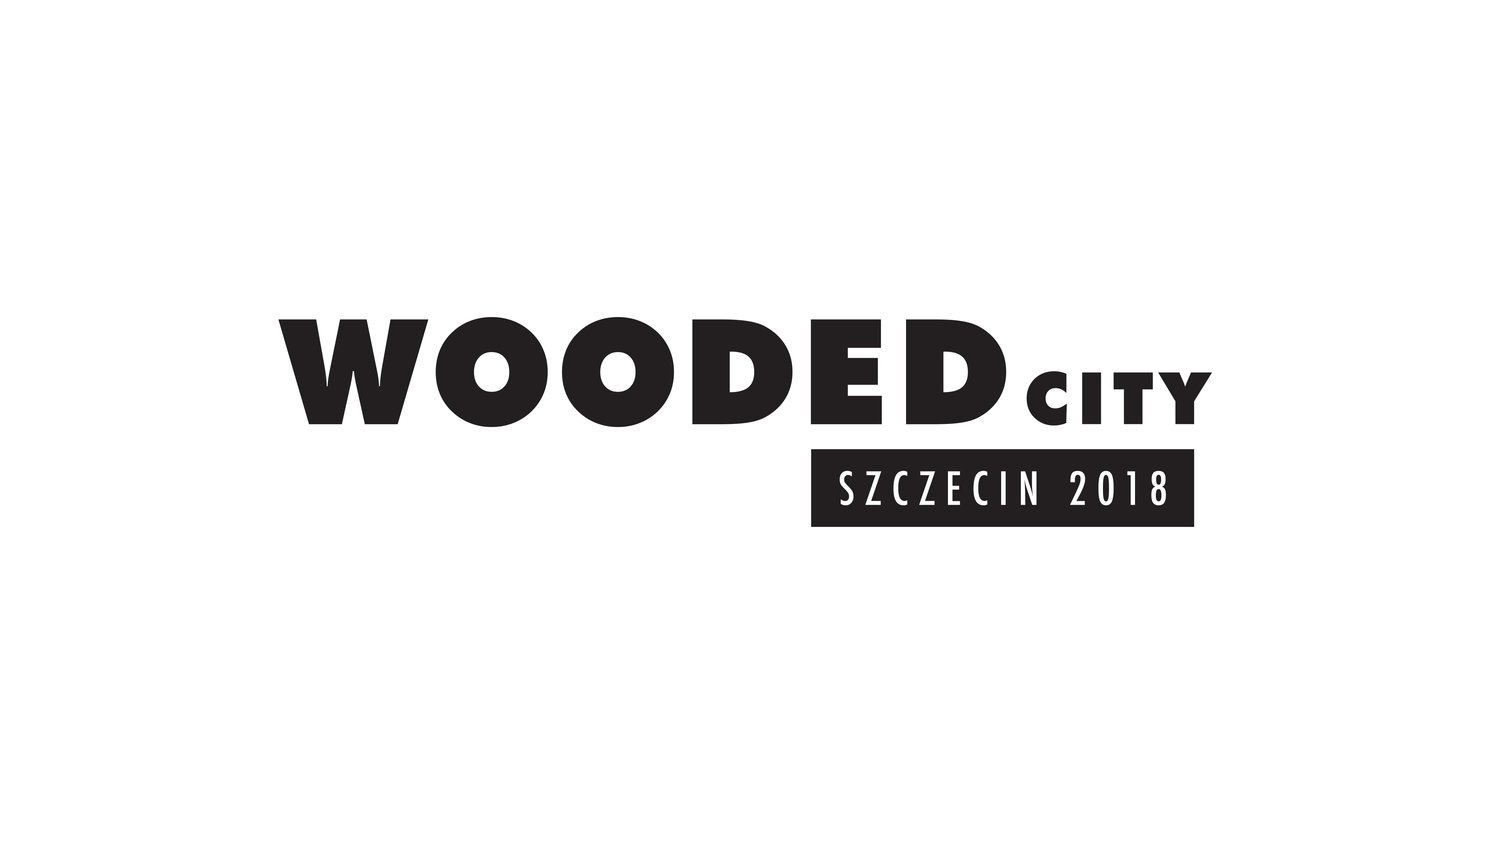 Wooded City